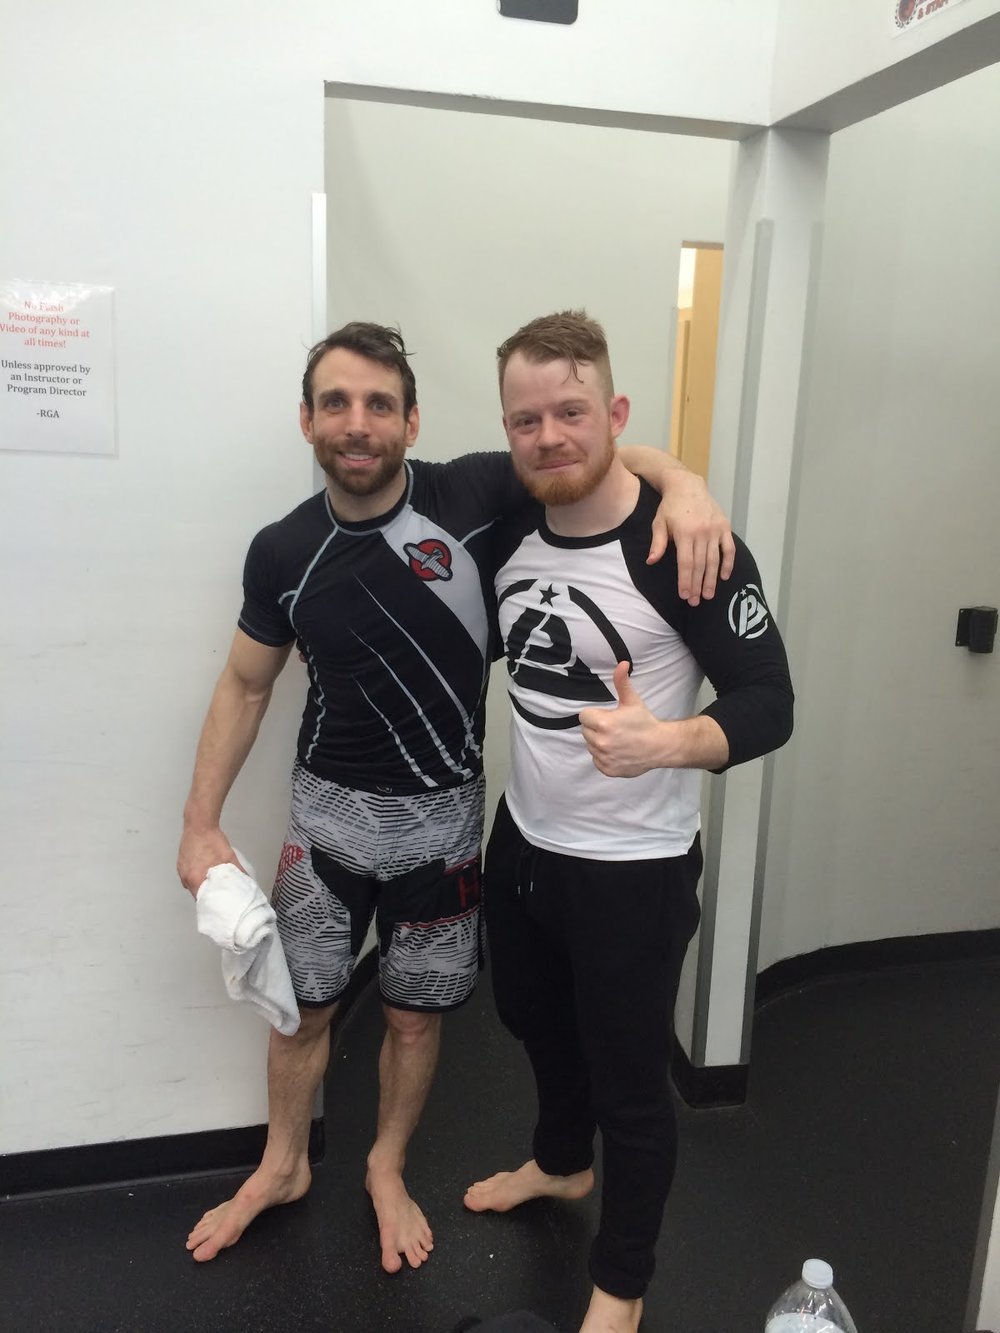 Eddie Cummings and me, my knees still hurt :) -